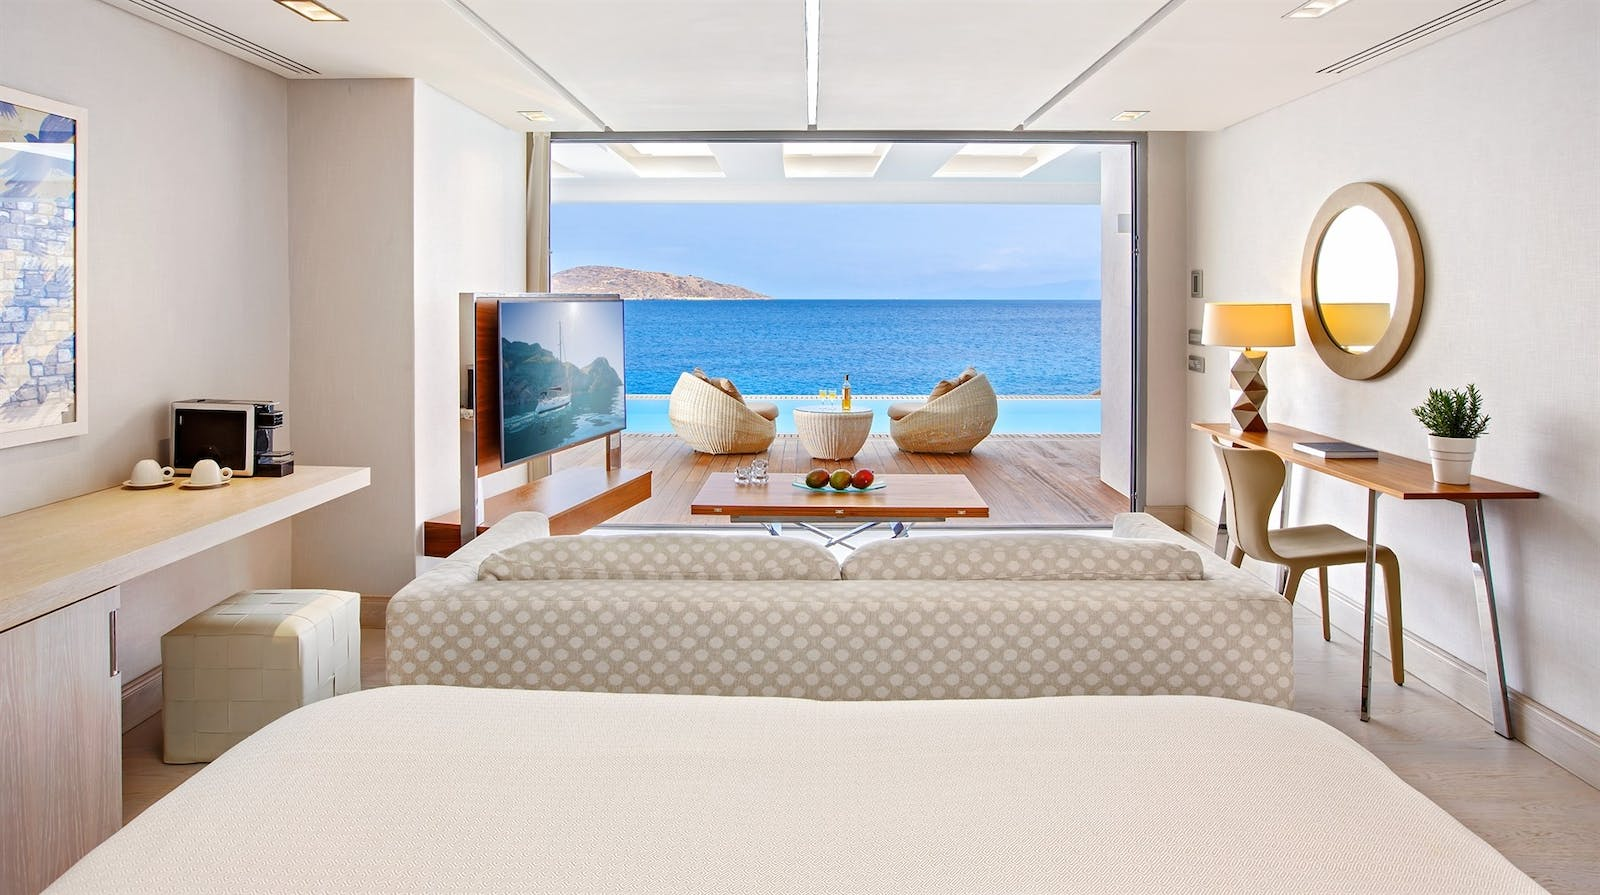 Premium Waterfront Junior Suite, Elounda Beach Hotel & Villas, Crete, Greece